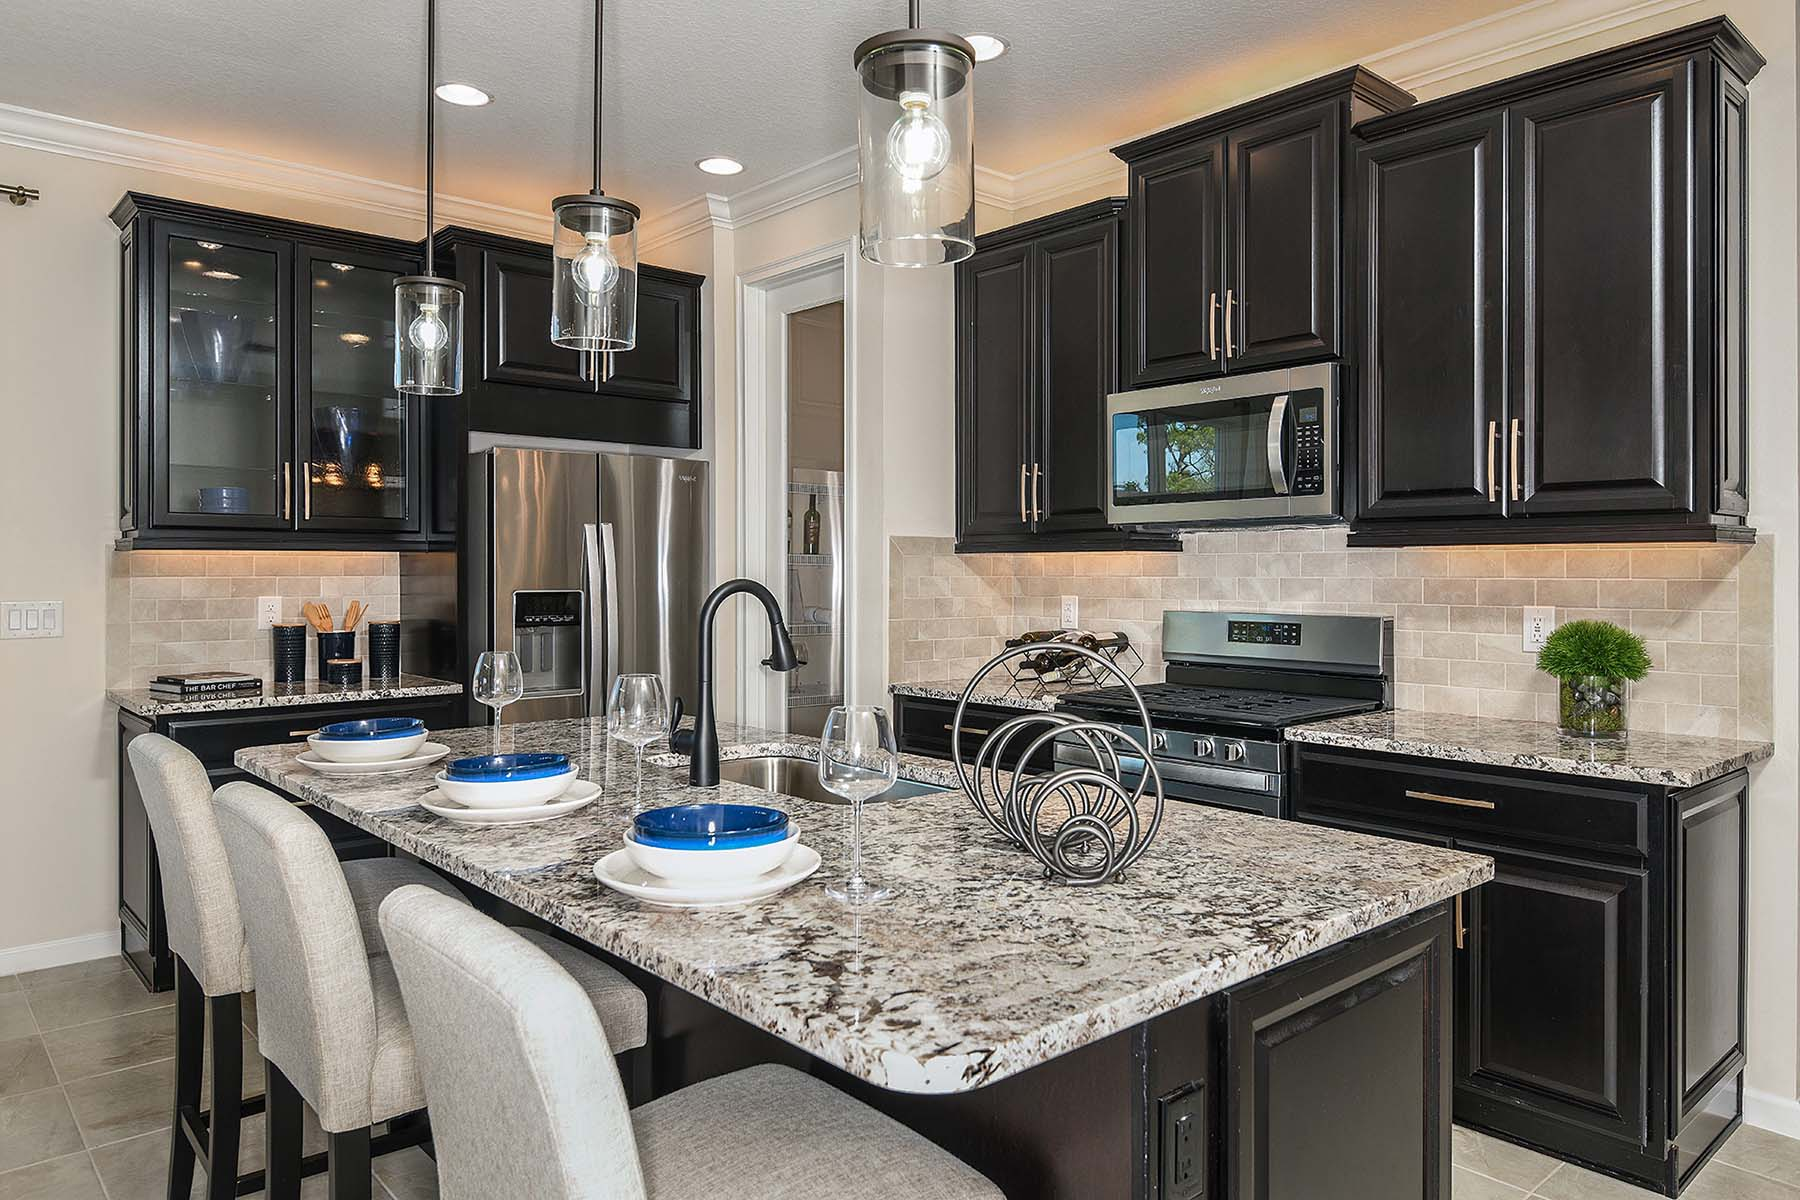 Bayport Plan Kitchen at Sunrise Preserve at Palmer Ranch in Sarasota Florida by Mattamy Homes